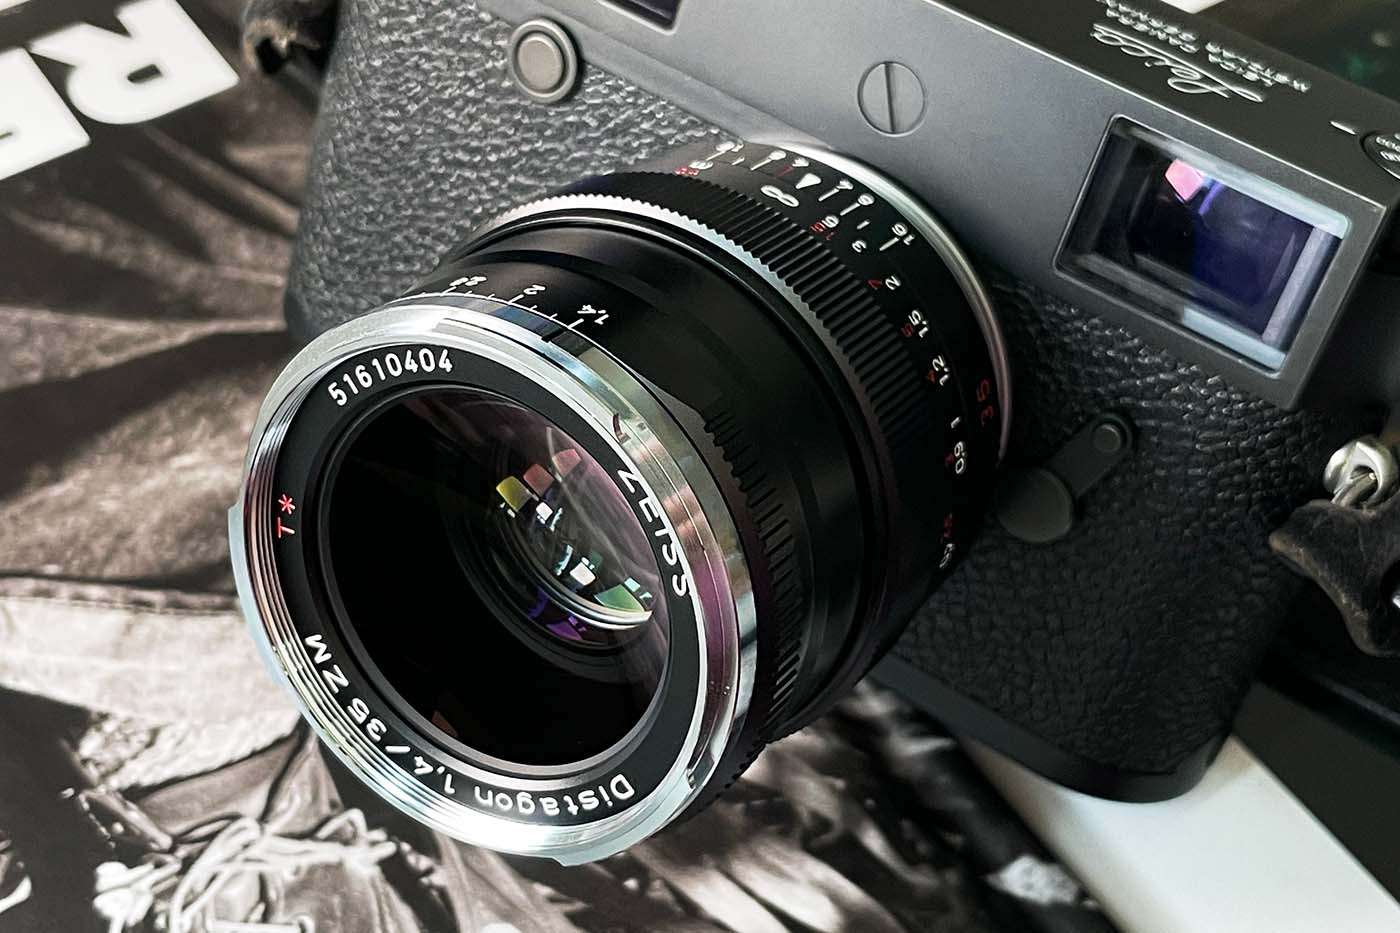 Lens-review-zeiss-distagon-35mm-f1.4-35-1.4-zm-m-mount-leica-wide-angle-street-character-optics-optical-barrel-construct-build-quality-front